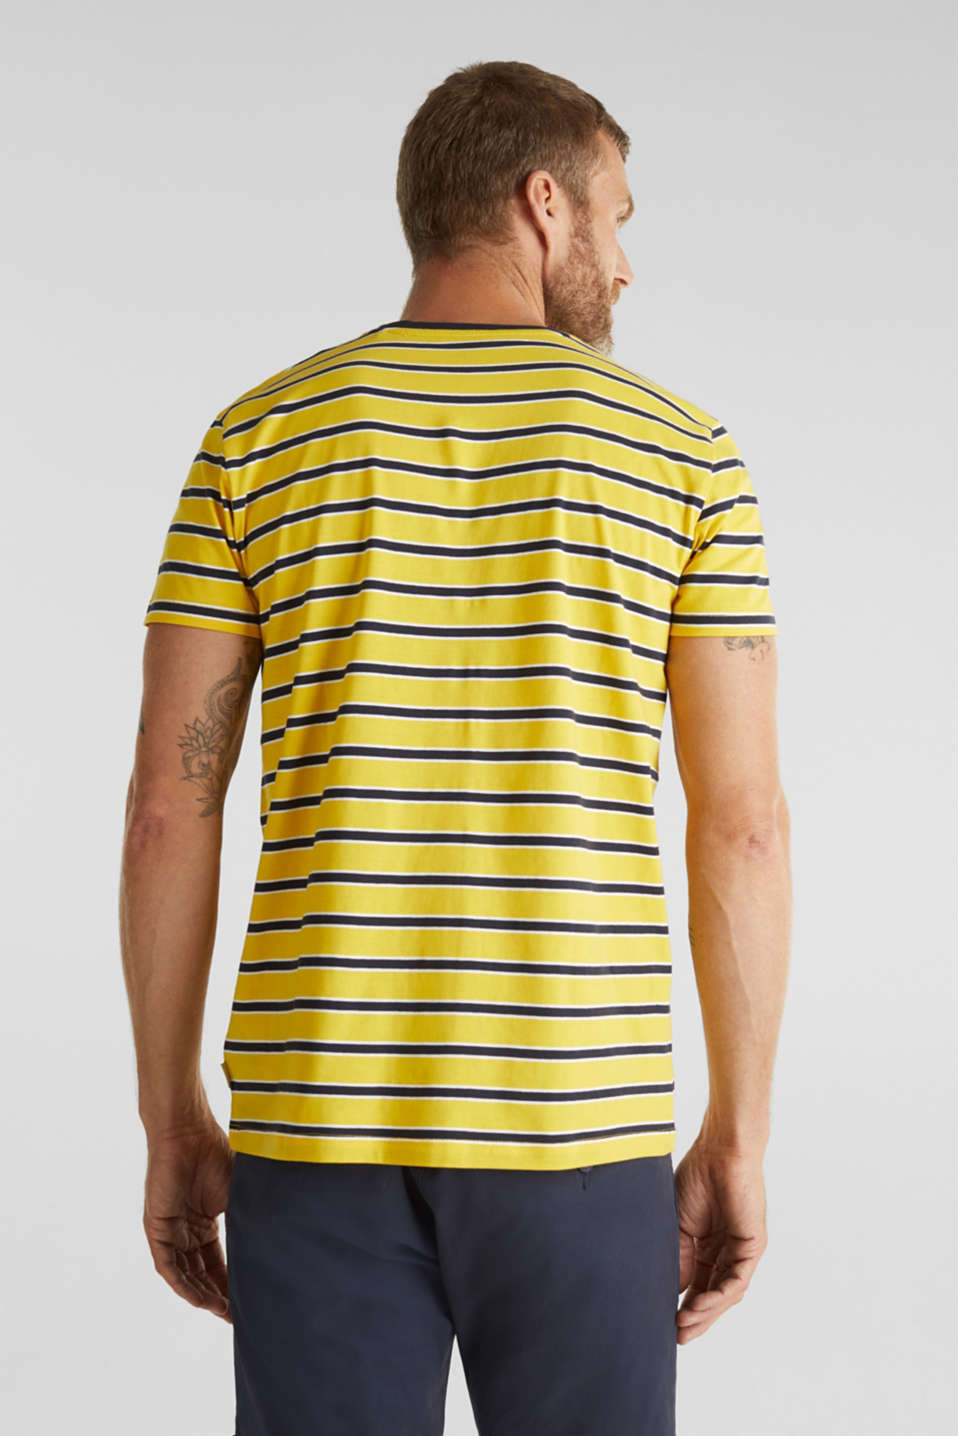 Jersey T-shirt with stripes, 100% cotton, YELLOW 3, detail image number 3